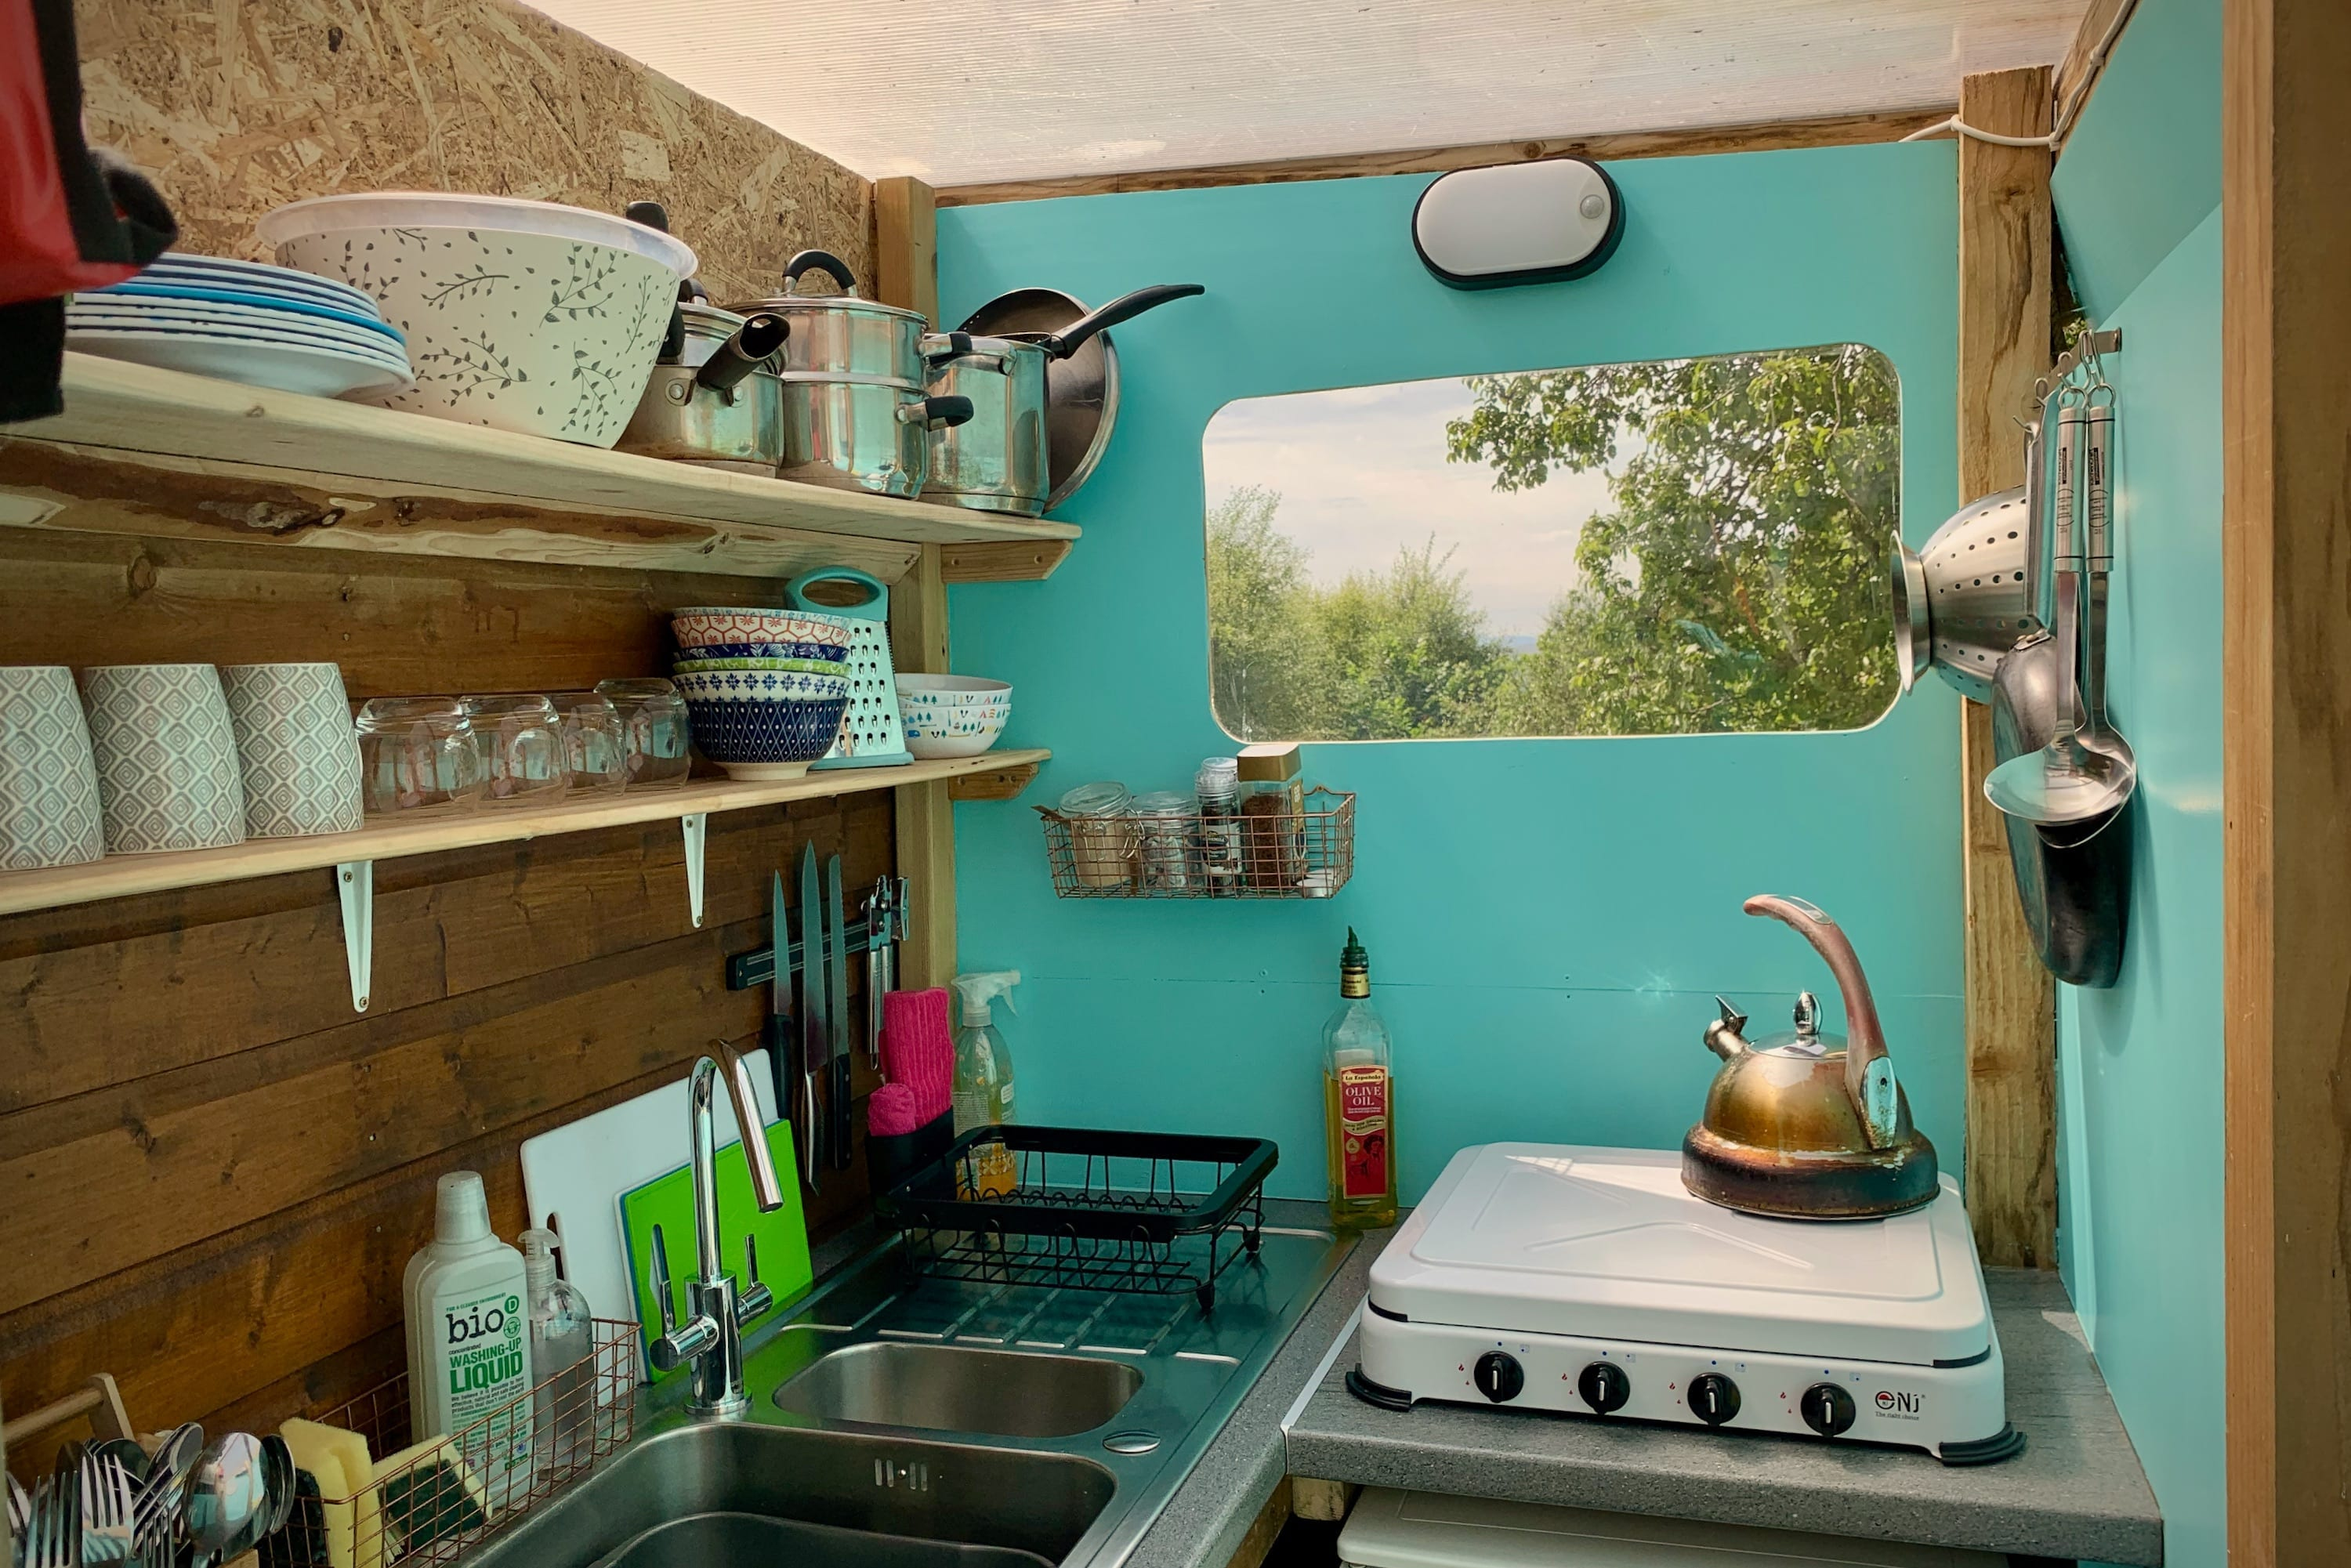 Ty crwn mawr yurt kitchen off grid sustainable eco glampsite and glamping